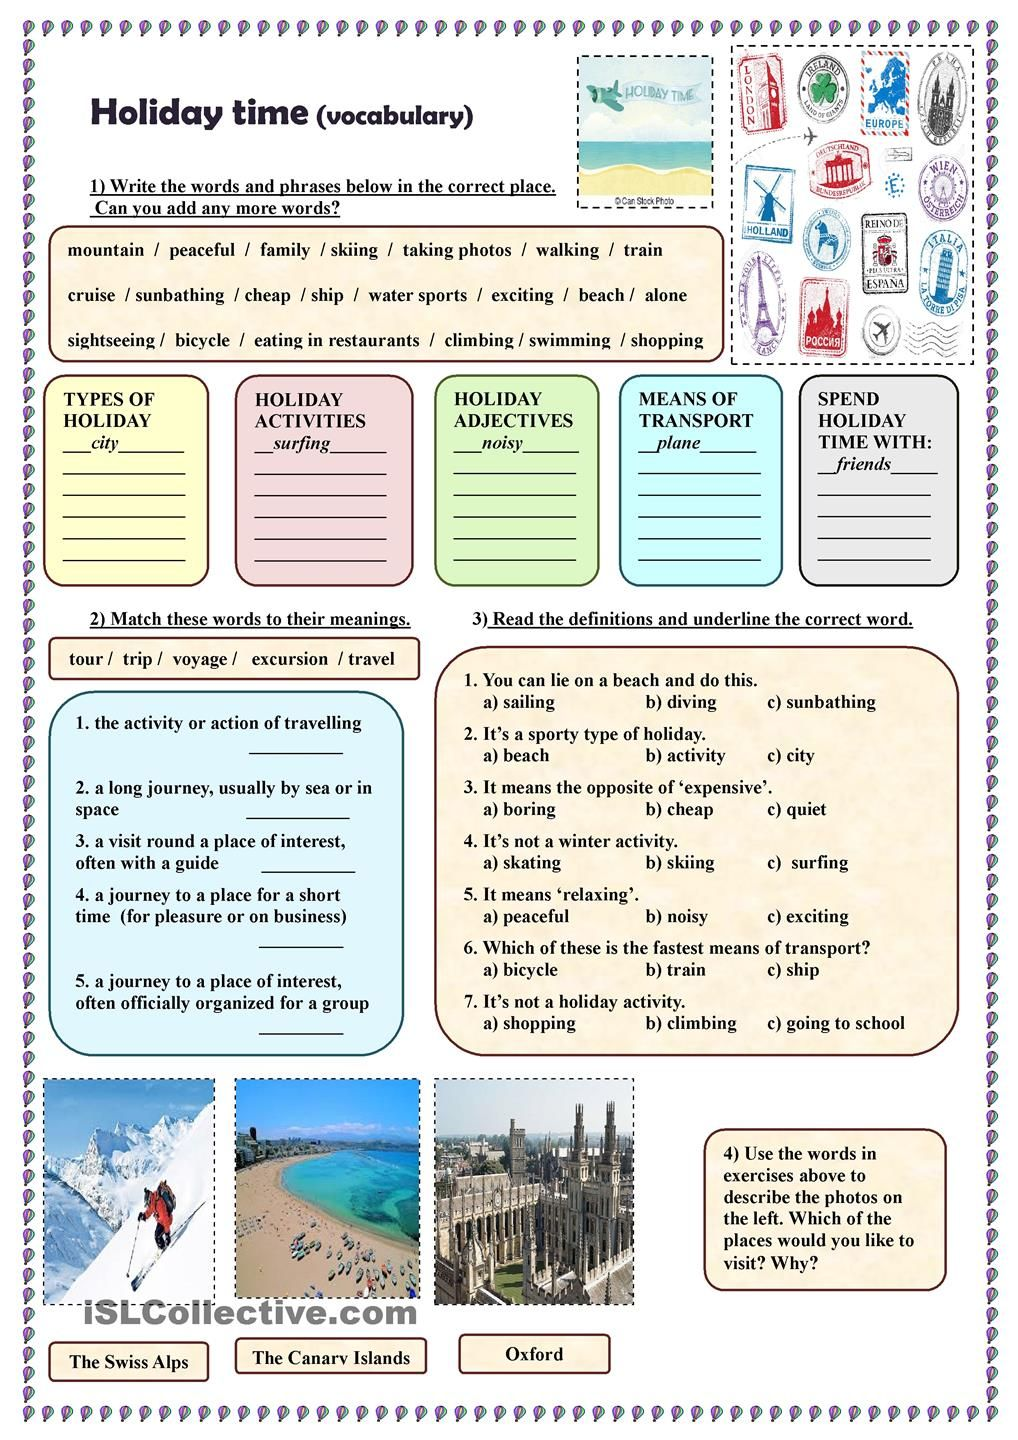 Holiday time (vocabulary) | English worksheets | Pinterest ...